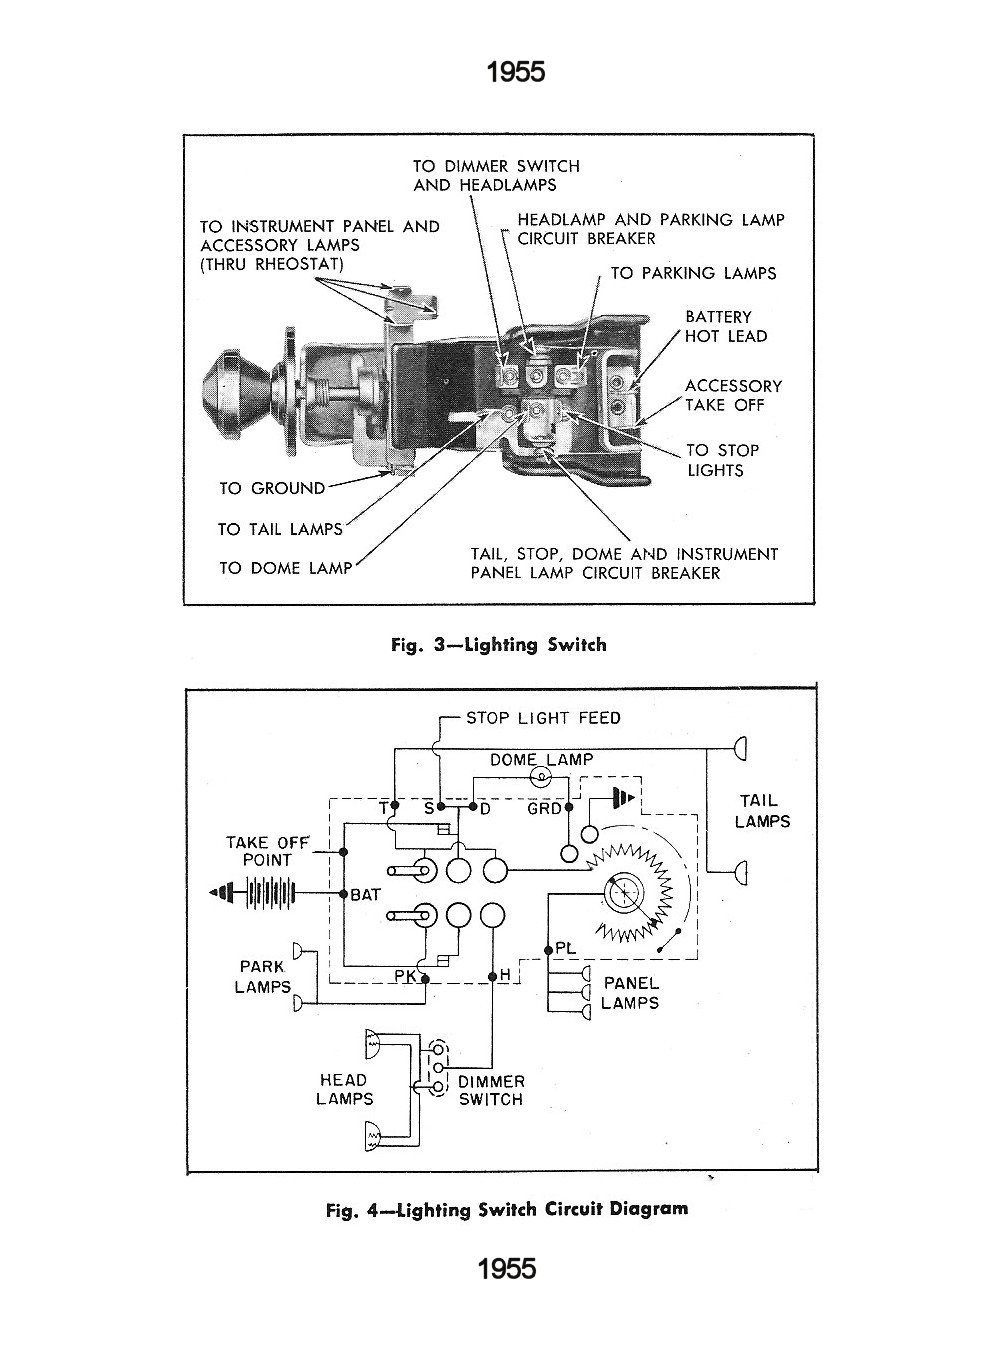 55csm1204a chevy wiring diagrams 66 Chevy Headlight Switch Wiring Diagram at couponss.co